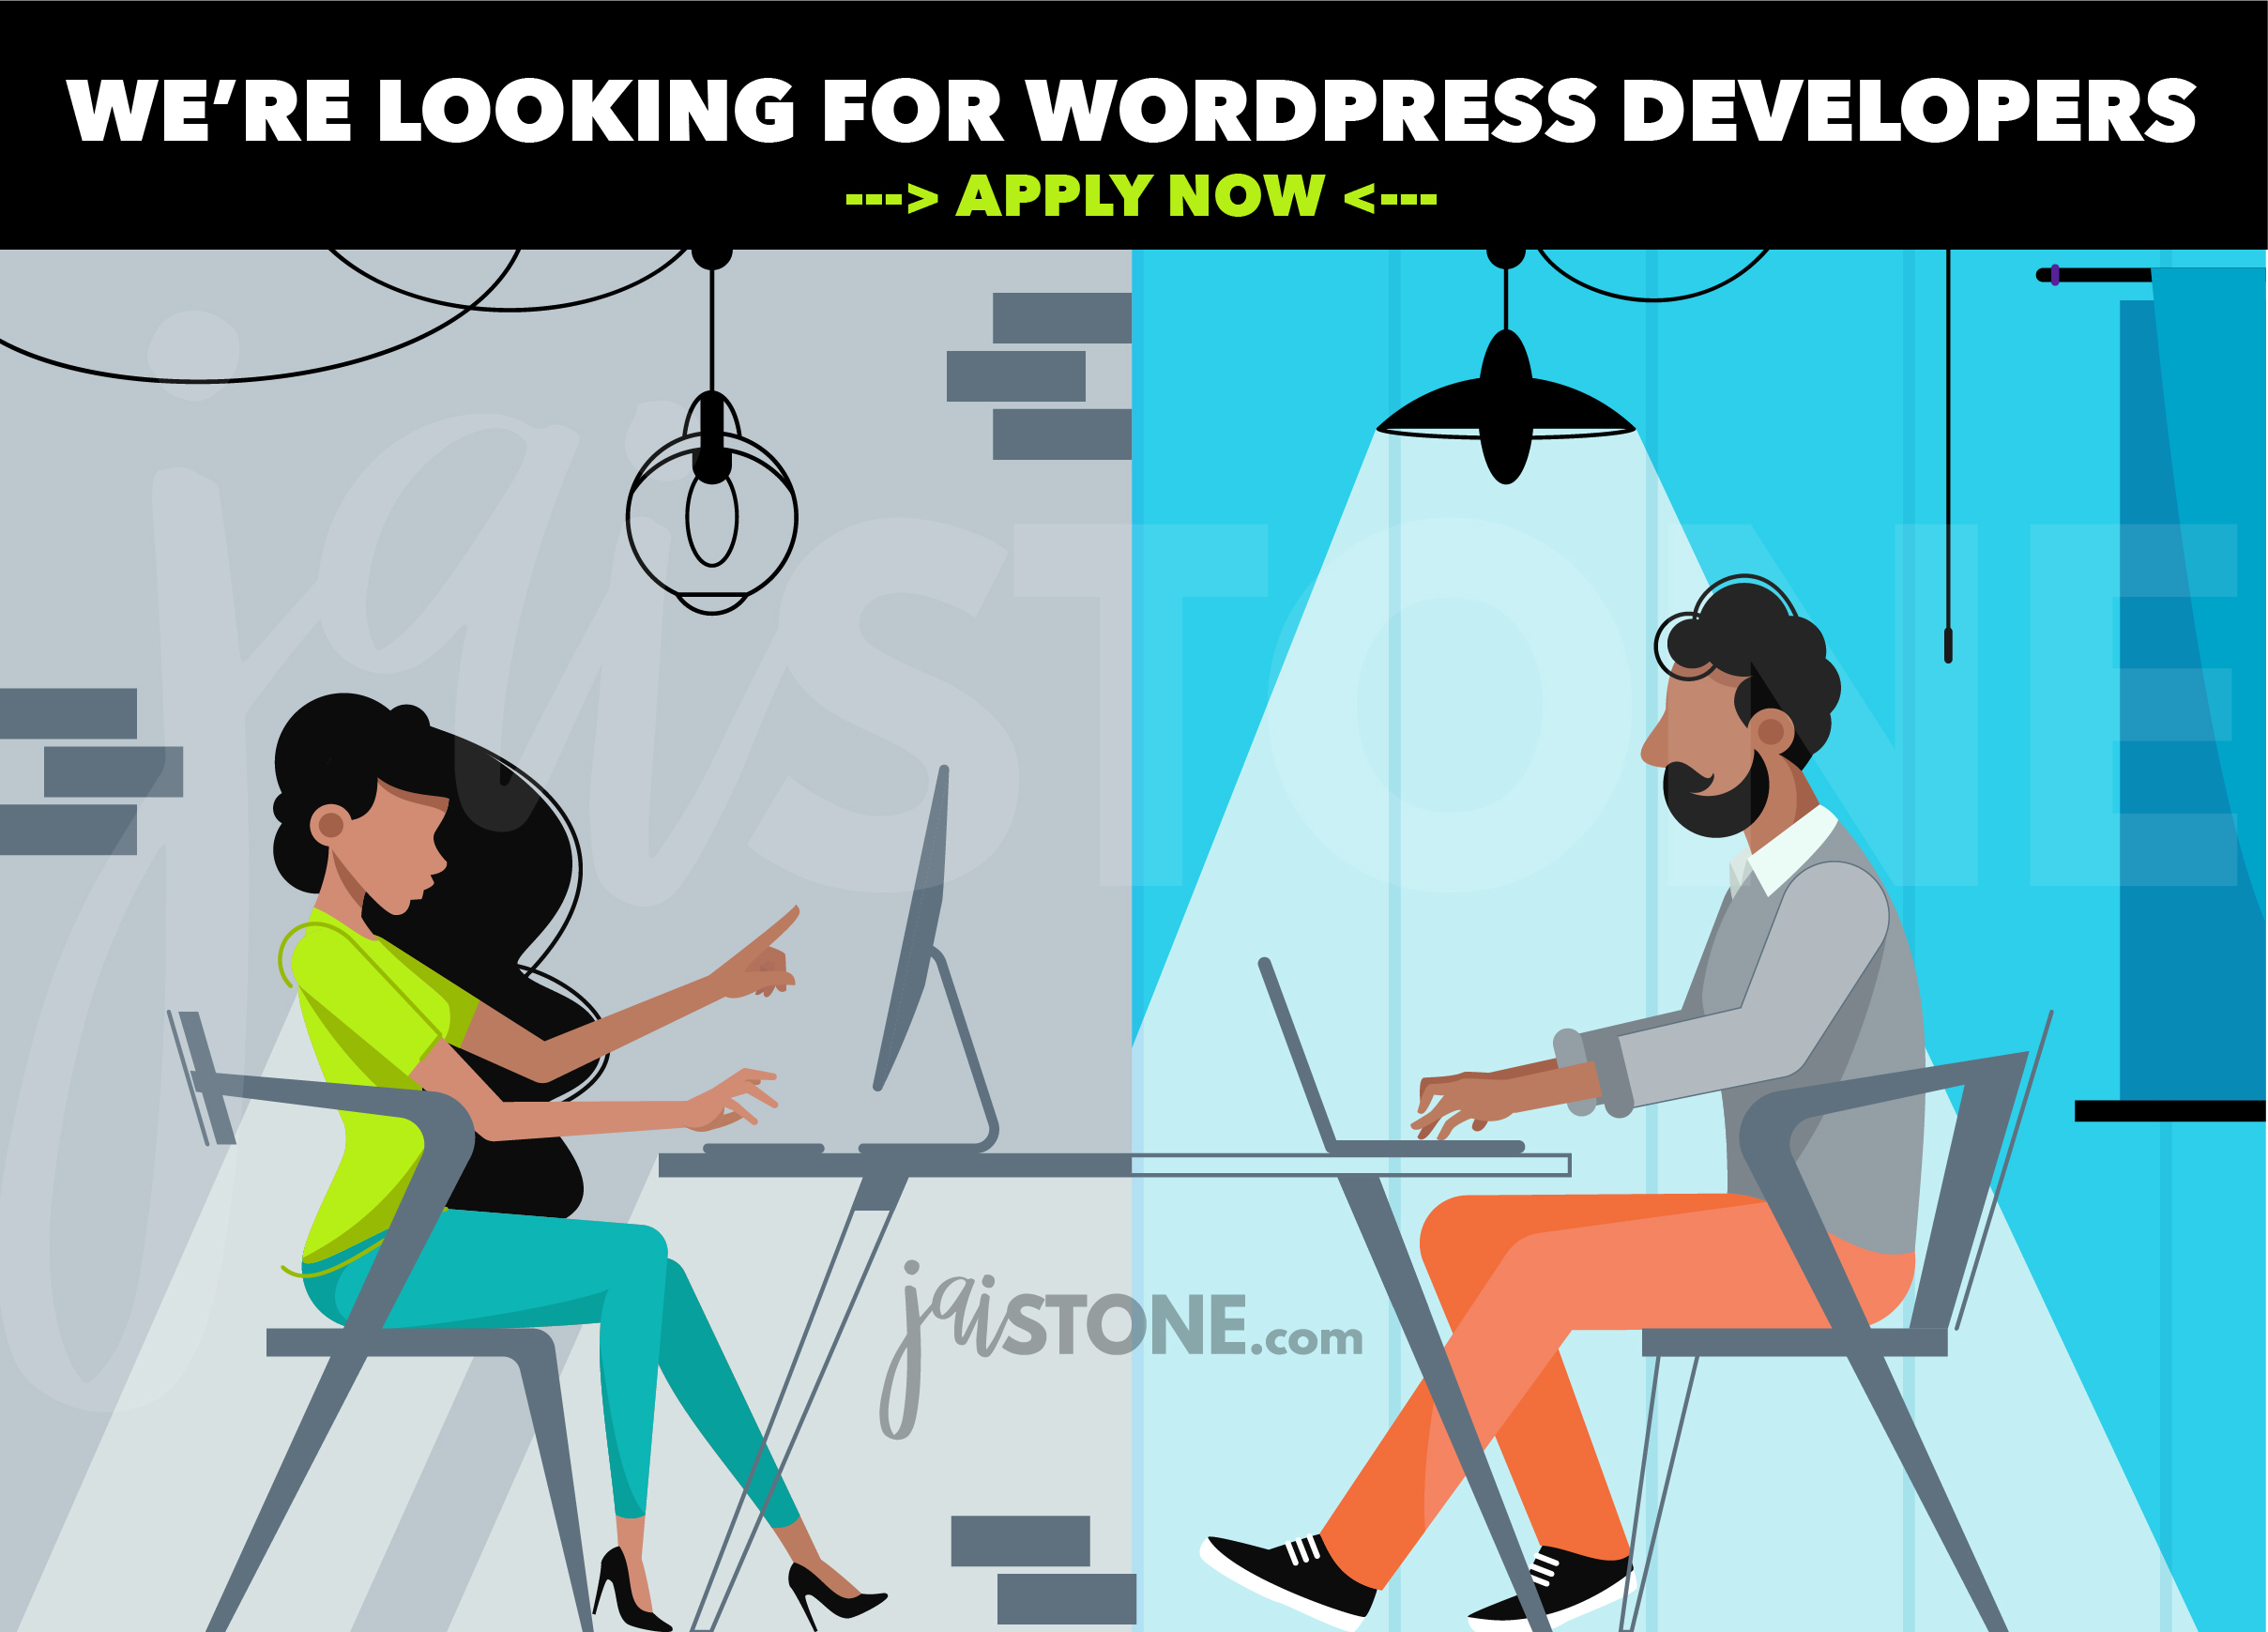 WE'RE LOOKING FOR WORDPRESS DEVELOPERS